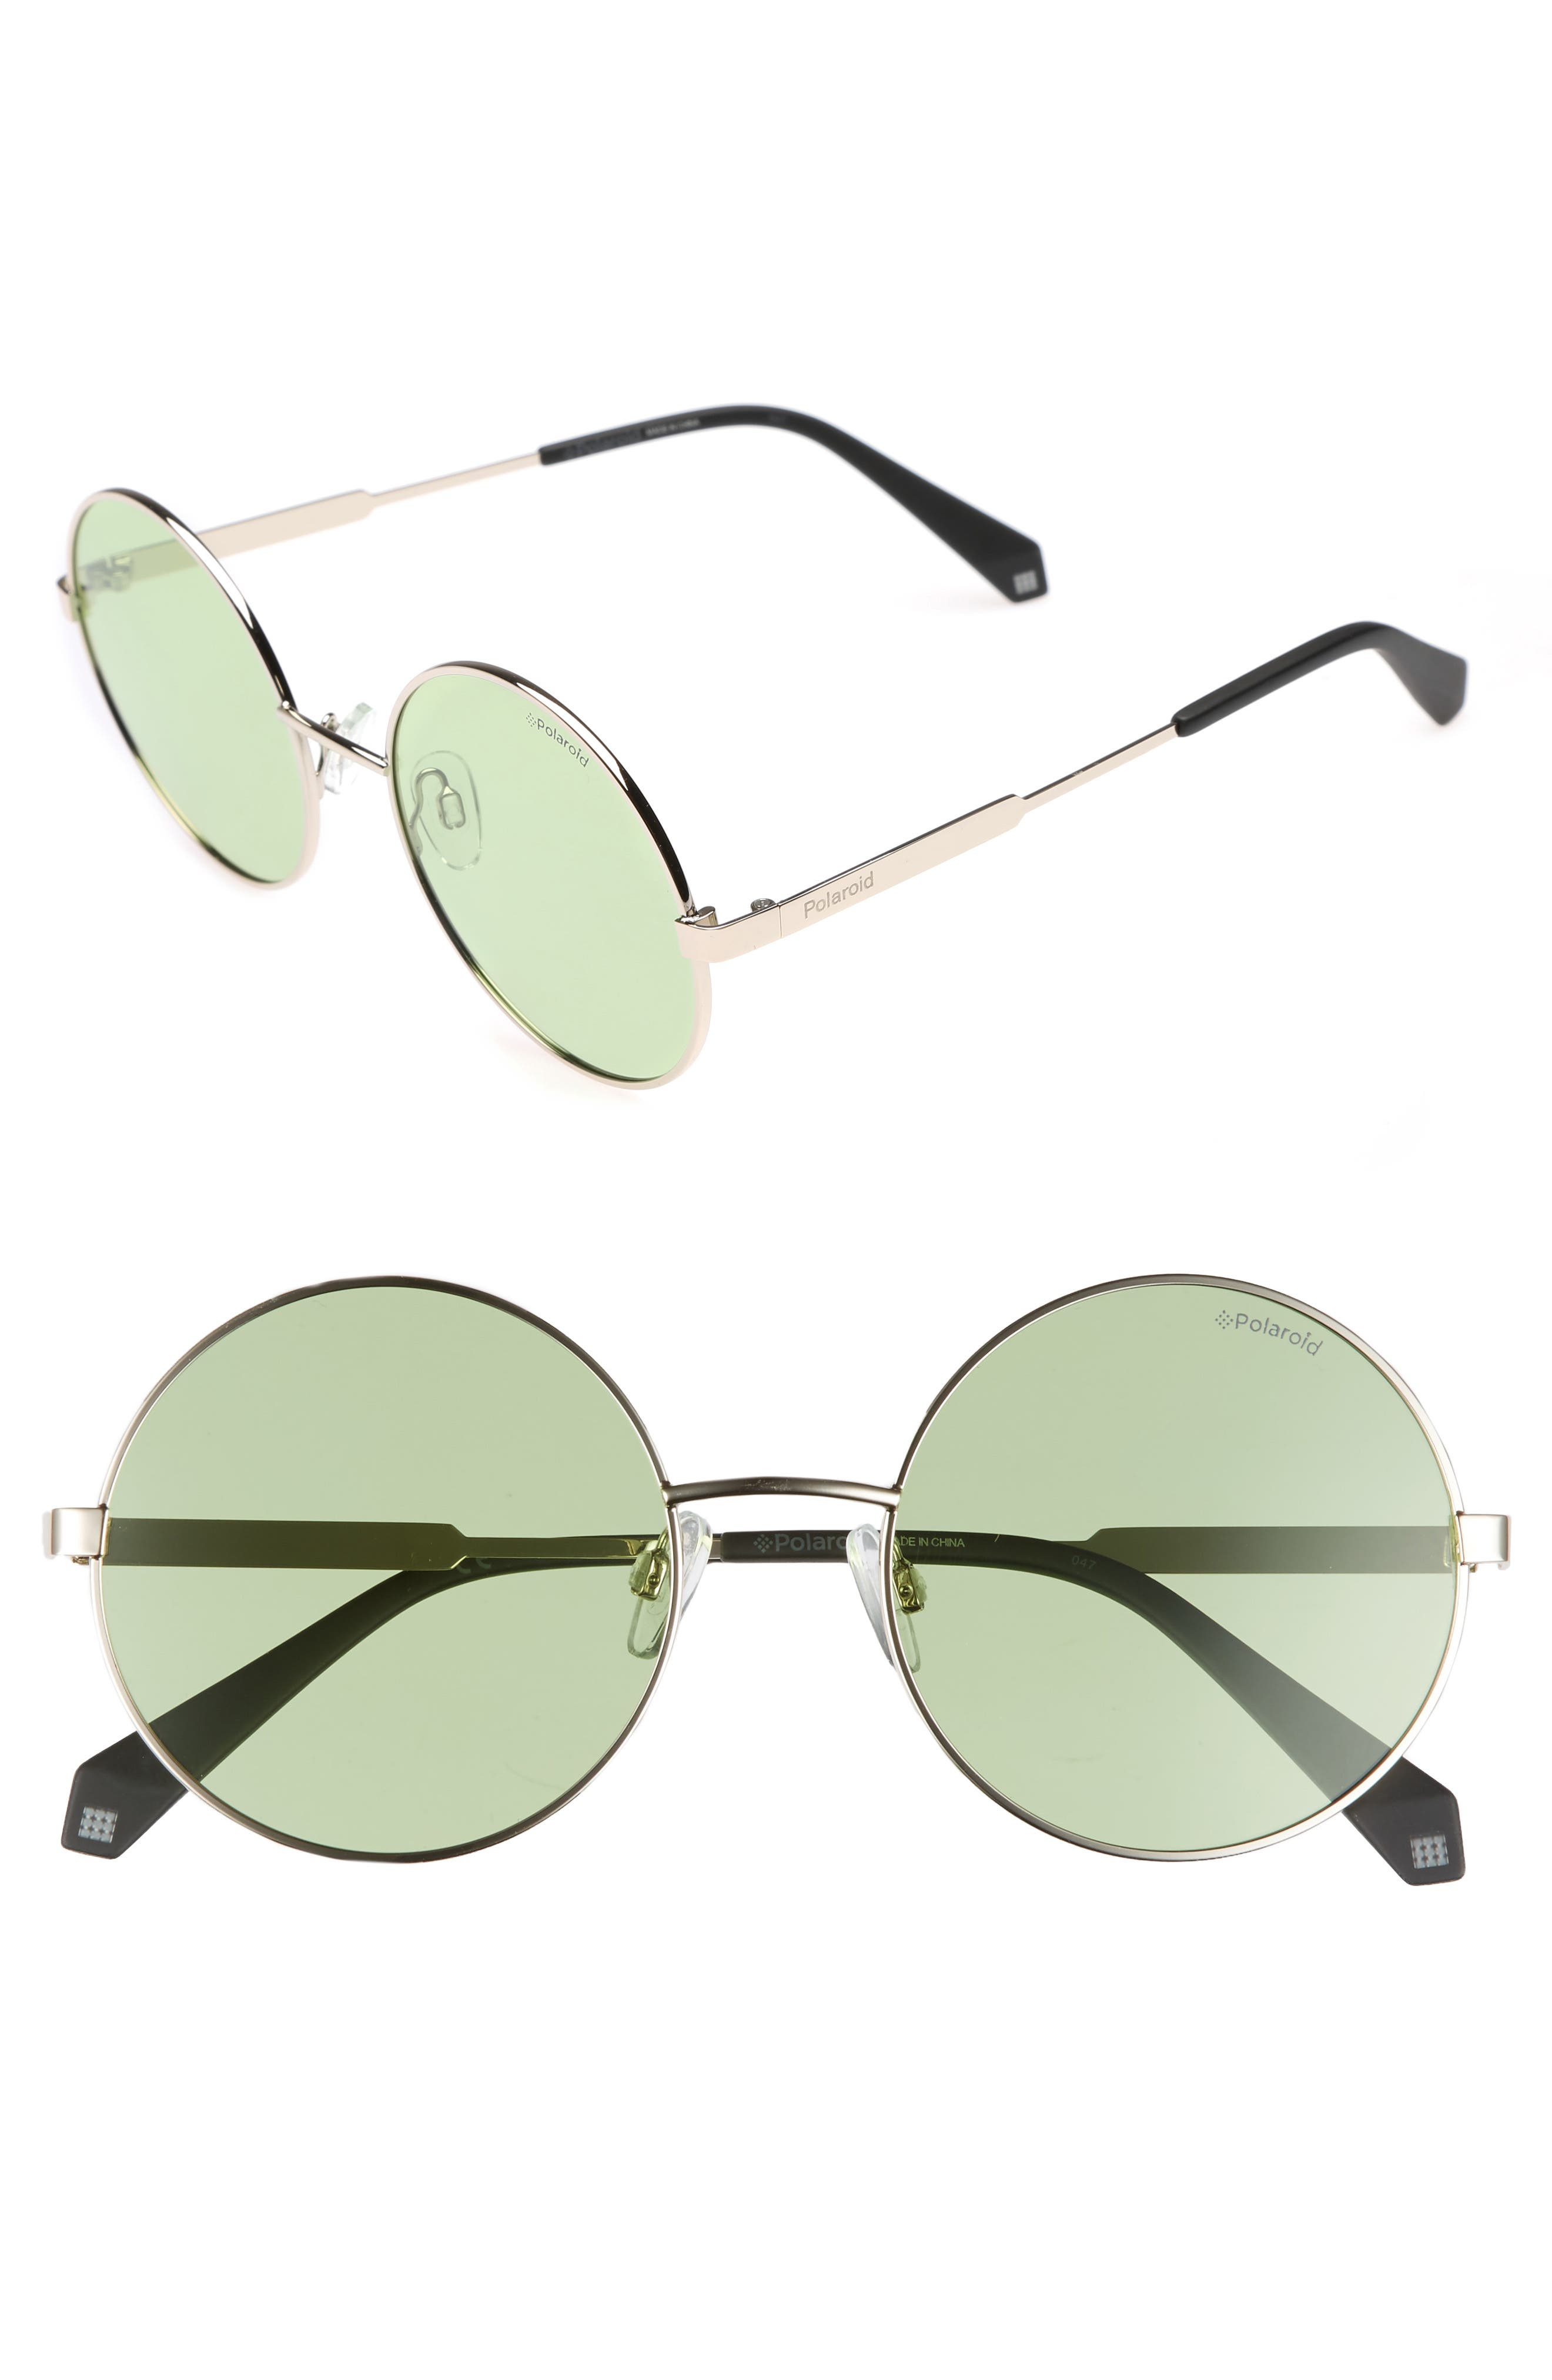 55mm Polarized Round Sunglasses,                             Main thumbnail 1, color,                             300